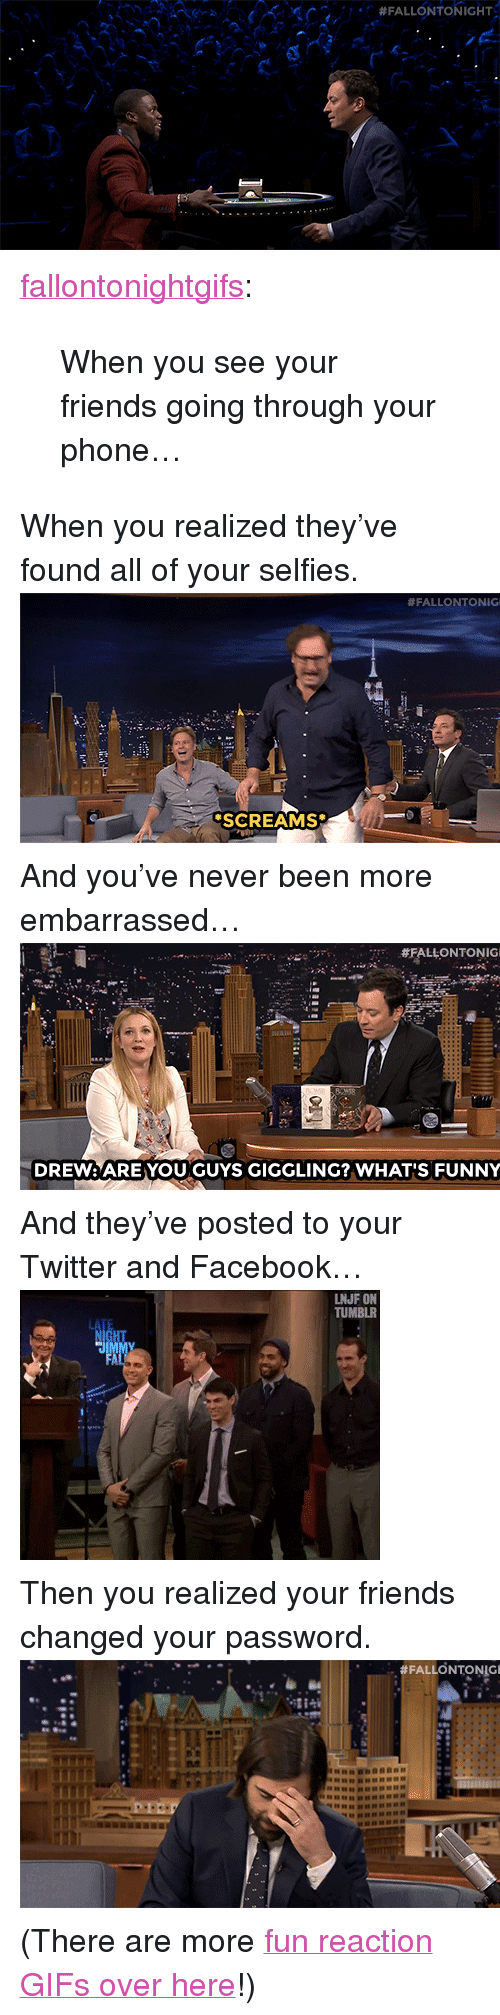 "reaction gifs: <p><a class=""tumblr_blog"" href=""http://fallontonightgifs.tumblr.com/post/108578644882/when-you-see-your-friends-going-through-your"" target=""_blank"">fallontonightgifs</a>:</p> <blockquote> <p>When you see your friends going through your phone…</p> </blockquote> <p>When you realized they&rsquo;ve found all of your selfies.<img alt="""" src=""https://78.media.tumblr.com/69faf1b399605b91836b24bc10fa18ba/tumblr_nia6pijyh91tv4k5po1_500.gif""/></p> <p>And you&rsquo;ve never been more embarrassed&hellip;<img alt="""" src=""https://78.media.tumblr.com/8e204270f1134cb36b7ae797816ec74f/tumblr_nexq41elfX1tv4k5po1_500.gif""/></p> <p>And they&rsquo;ve posted to your Twitter and Facebook&hellip;<img alt="""" src=""https://78.media.tumblr.com/83c125f3769c9b9163bf051b75480b20/tumblr_na96ztyLLY1tv4k5po1_400.gif""/></p> <p>Then you realized your friends changed your password. <img alt="""" src=""https://78.media.tumblr.com/df5c96b7fe56debfd1fd4ca8006ccbd6/tumblr_ndlaq56f161tv4k5po1_500.gif""/></p> <p>(There are more <a href=""http://fallontonightgifs.tumblr.com"" target=""_blank"">fun reaction GIFs over here</a>!) </p>"